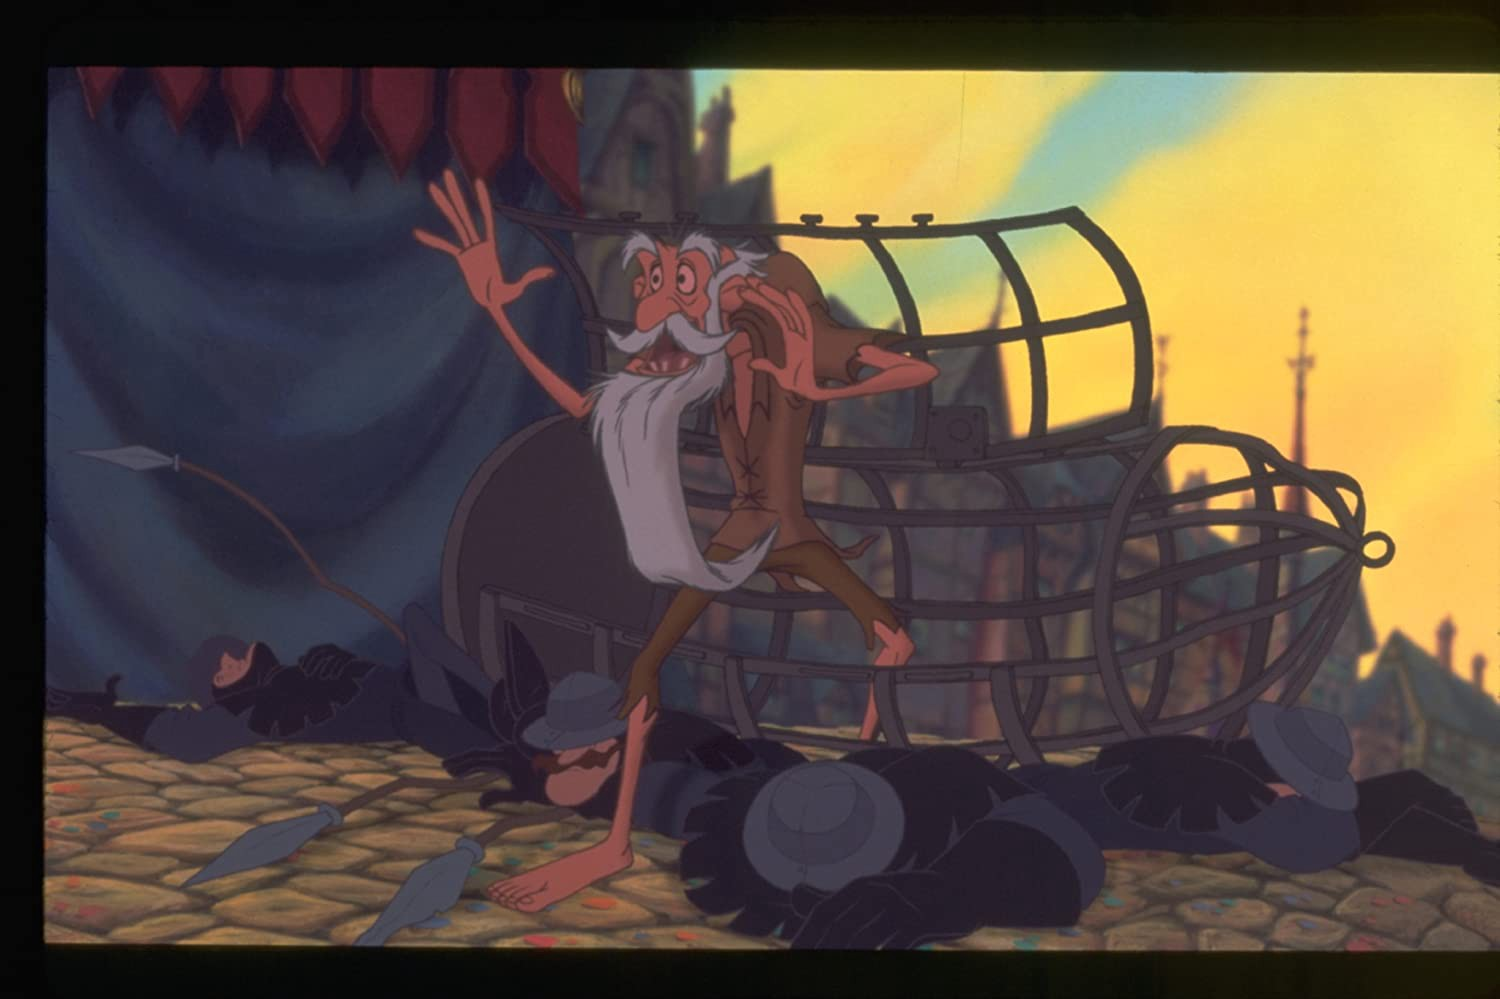 The Hunchback Of Notre Dame 1996 Full Hd Movie Download Mp4 By Gadisku Medium